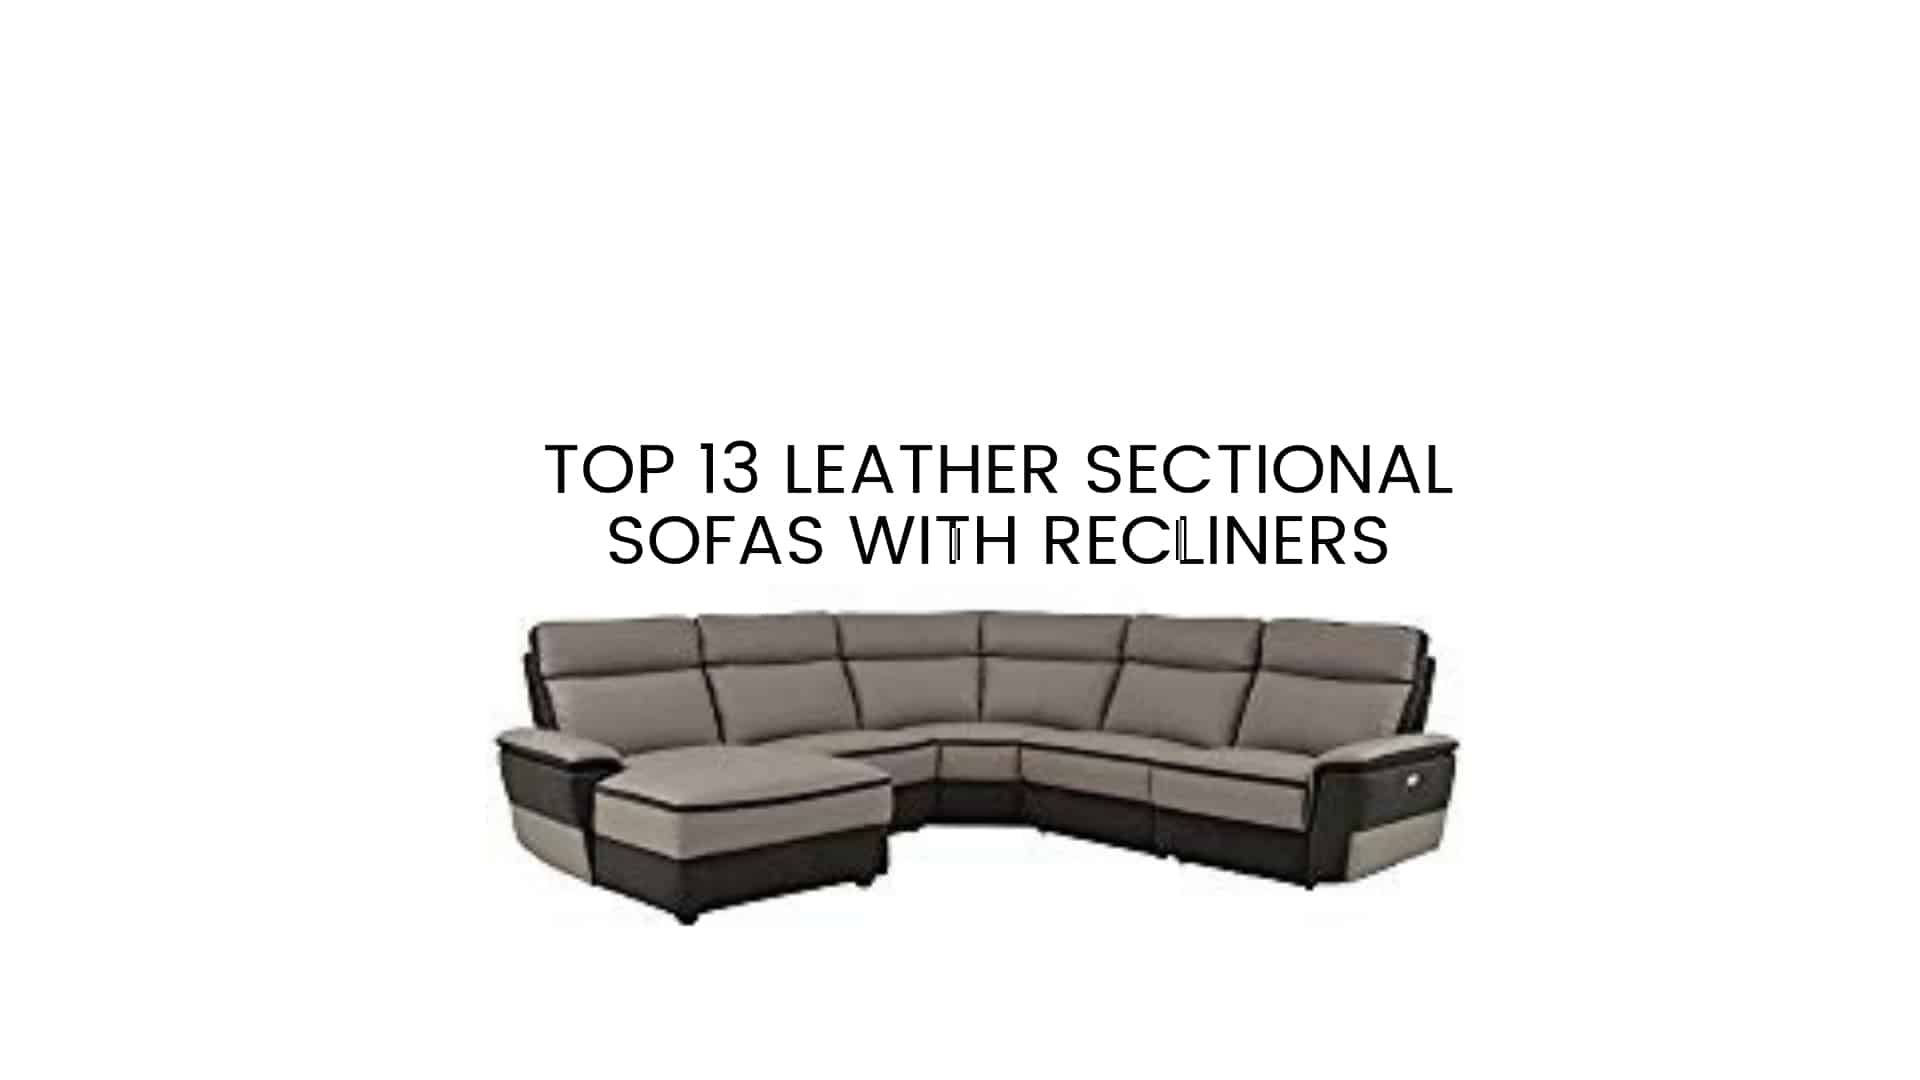 Made Sofa Reviews Top 13 Leather Sectional Sofas With Recliners 2019 Reviews